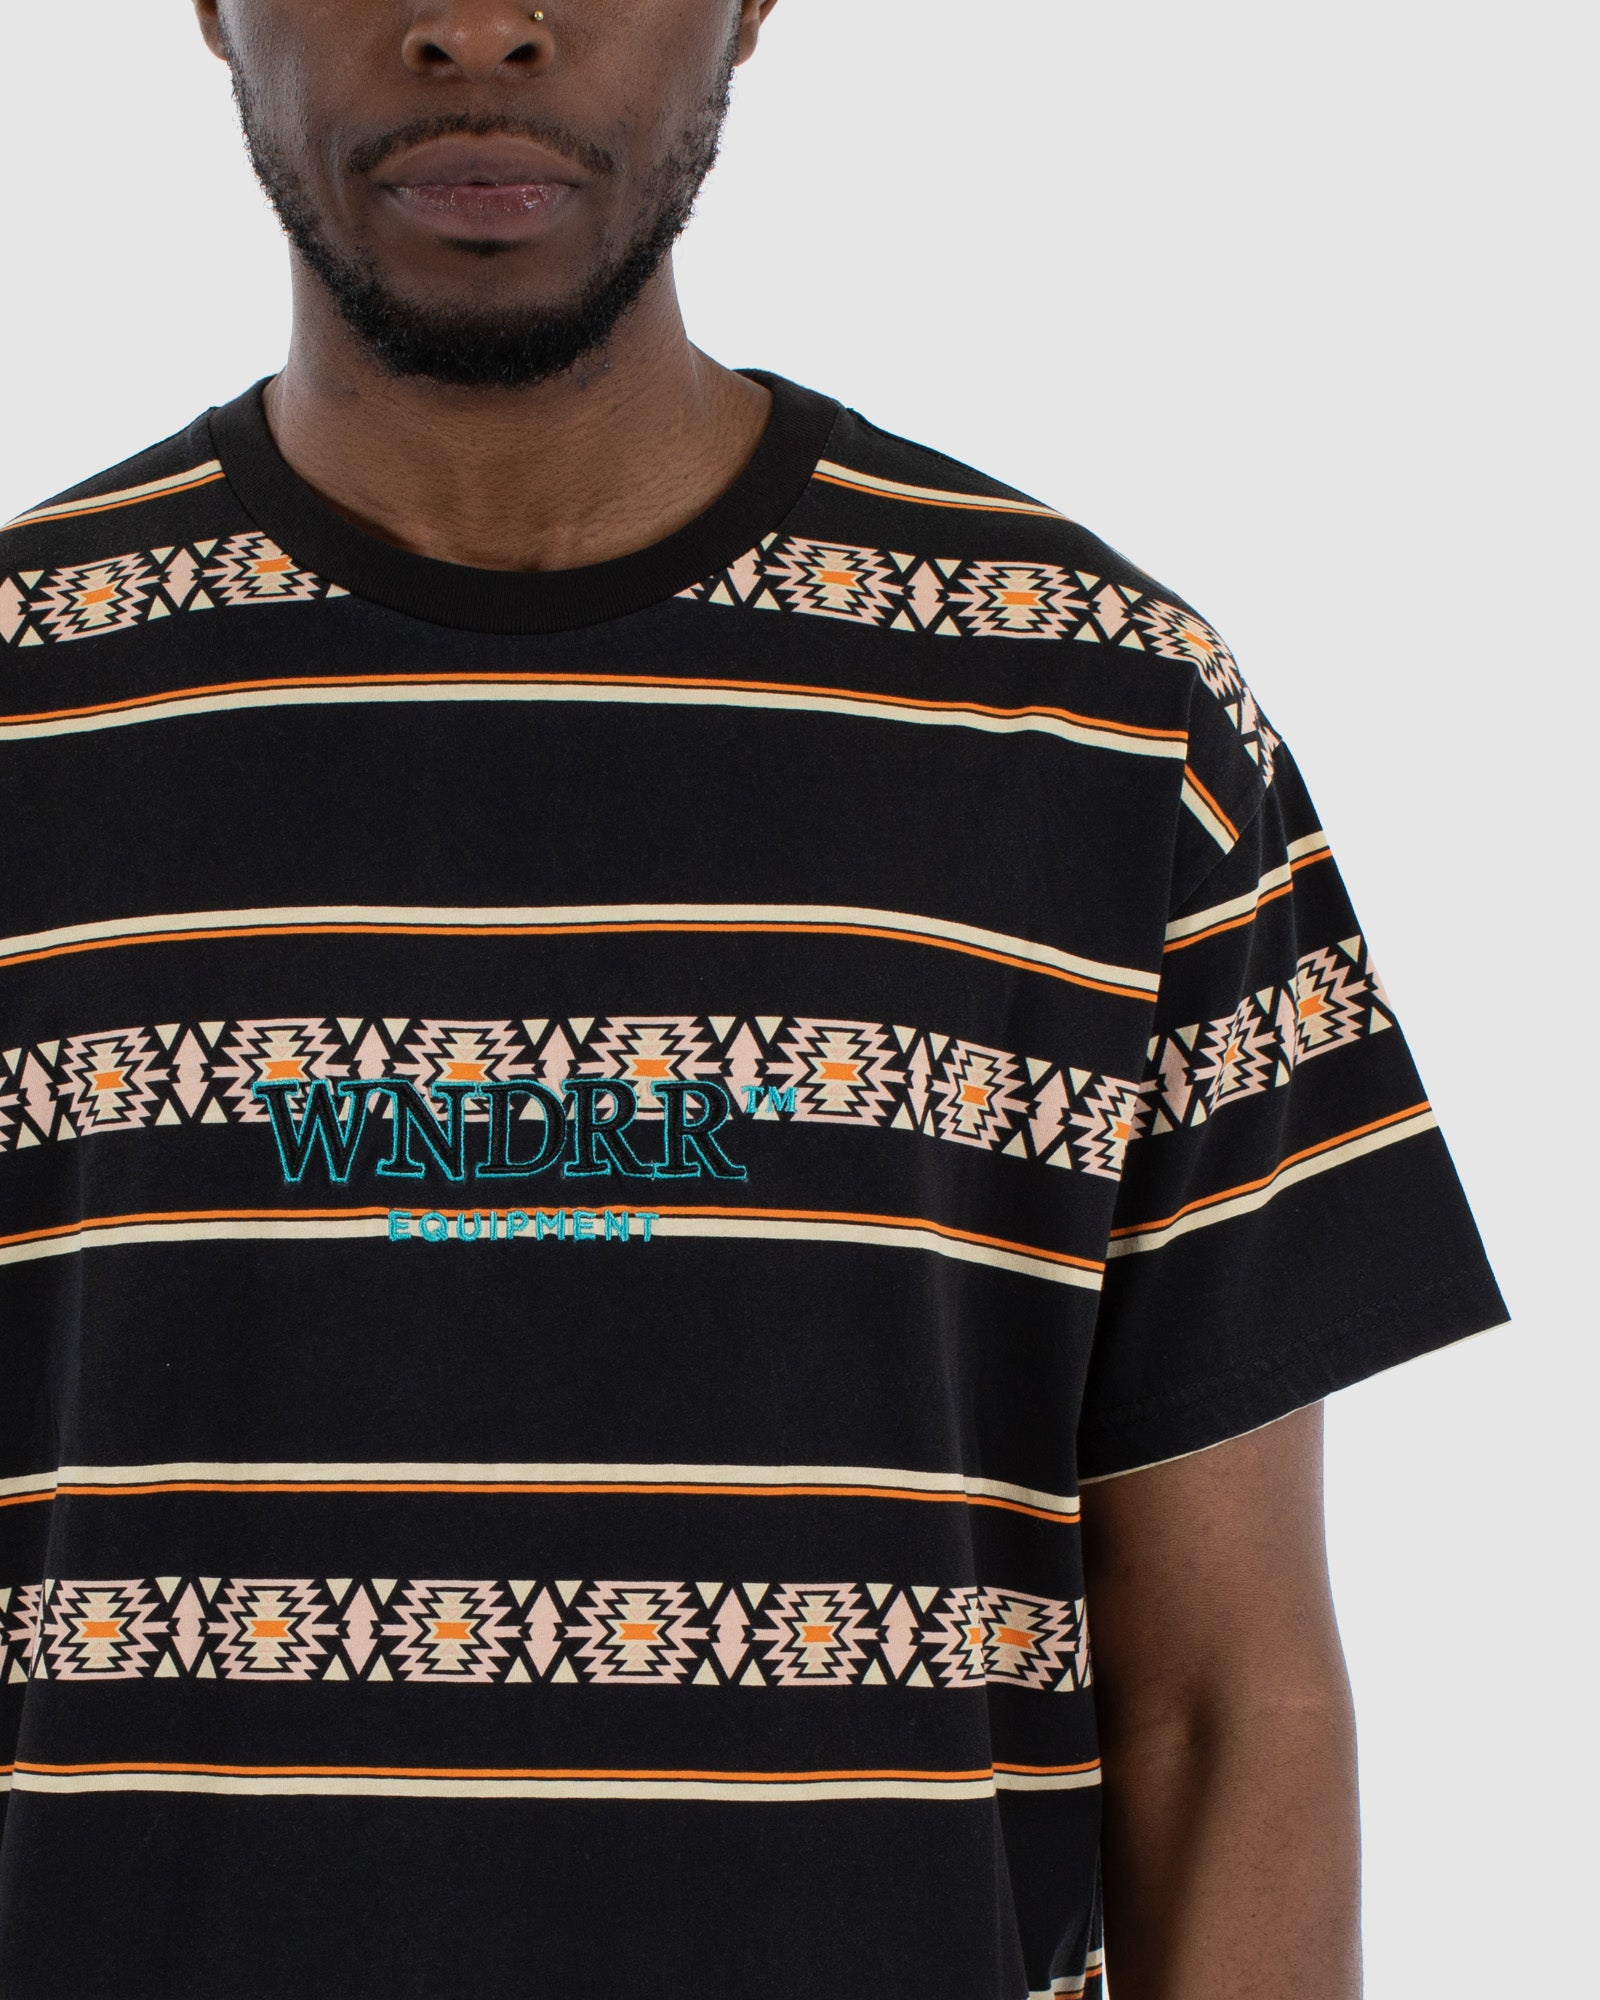 Wndrr Toci Stripe Custom Fit Tee - Multi